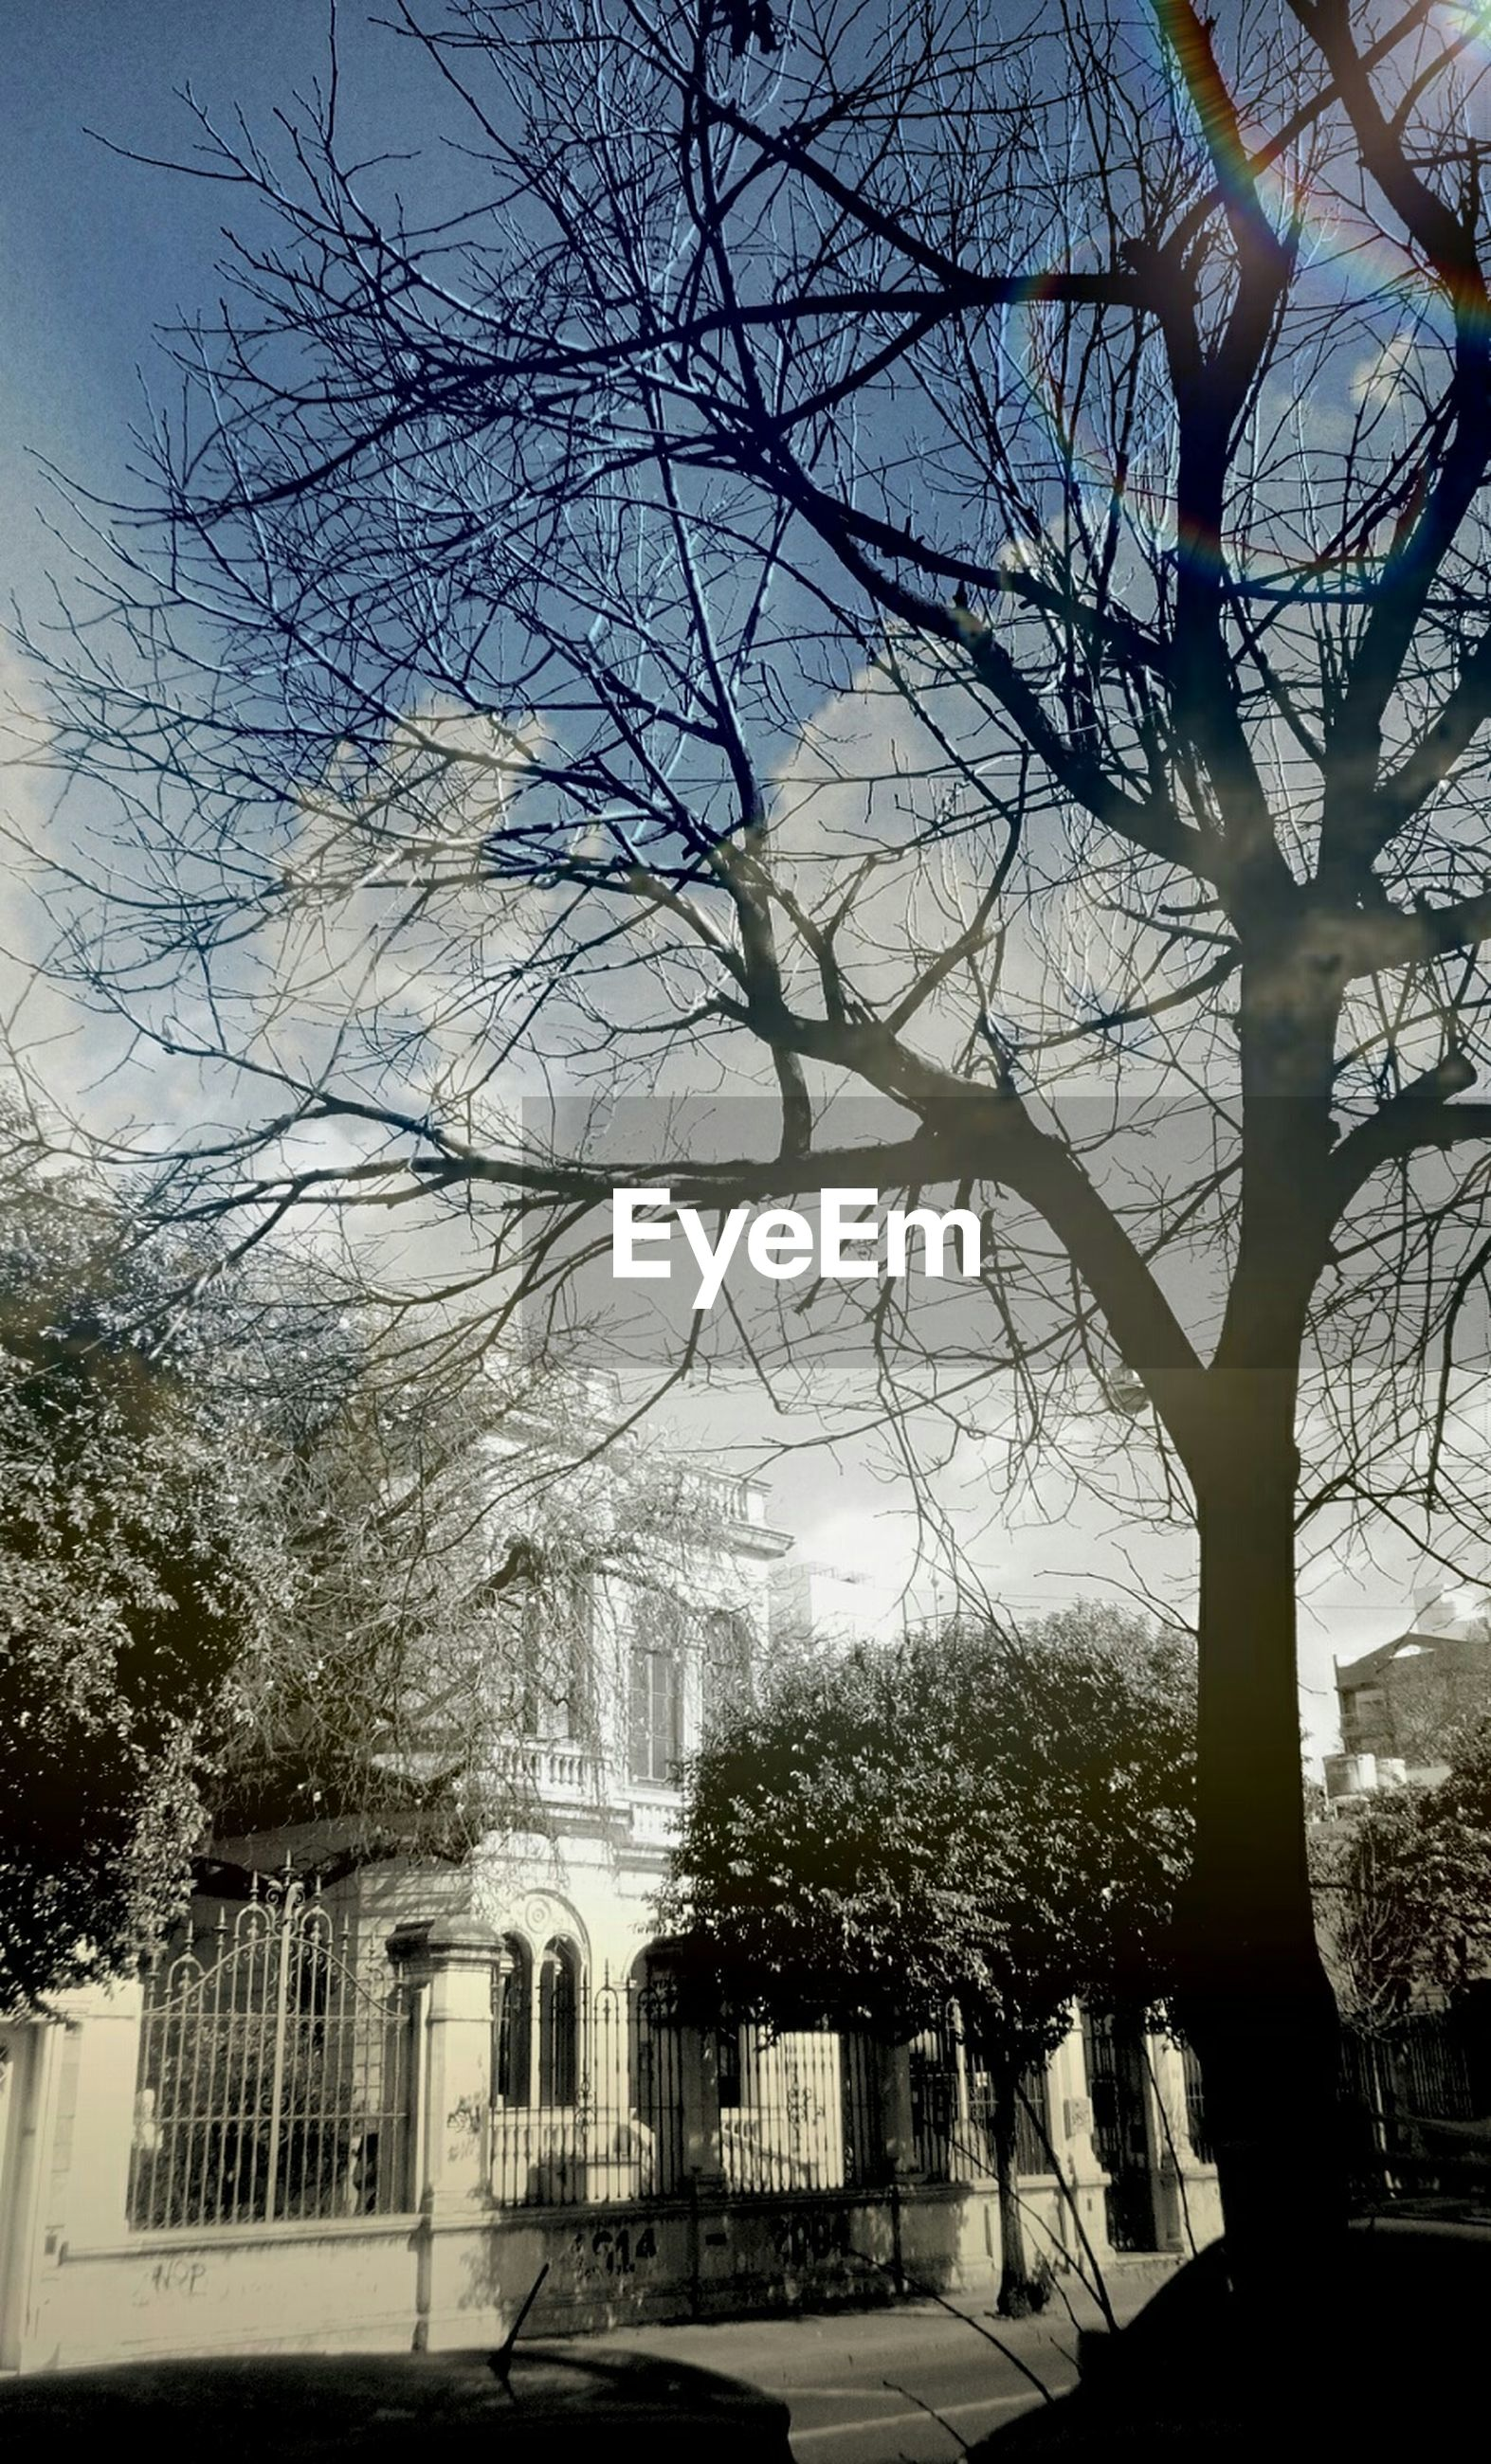 BARE TREES WITH BUILDINGS IN BACKGROUND